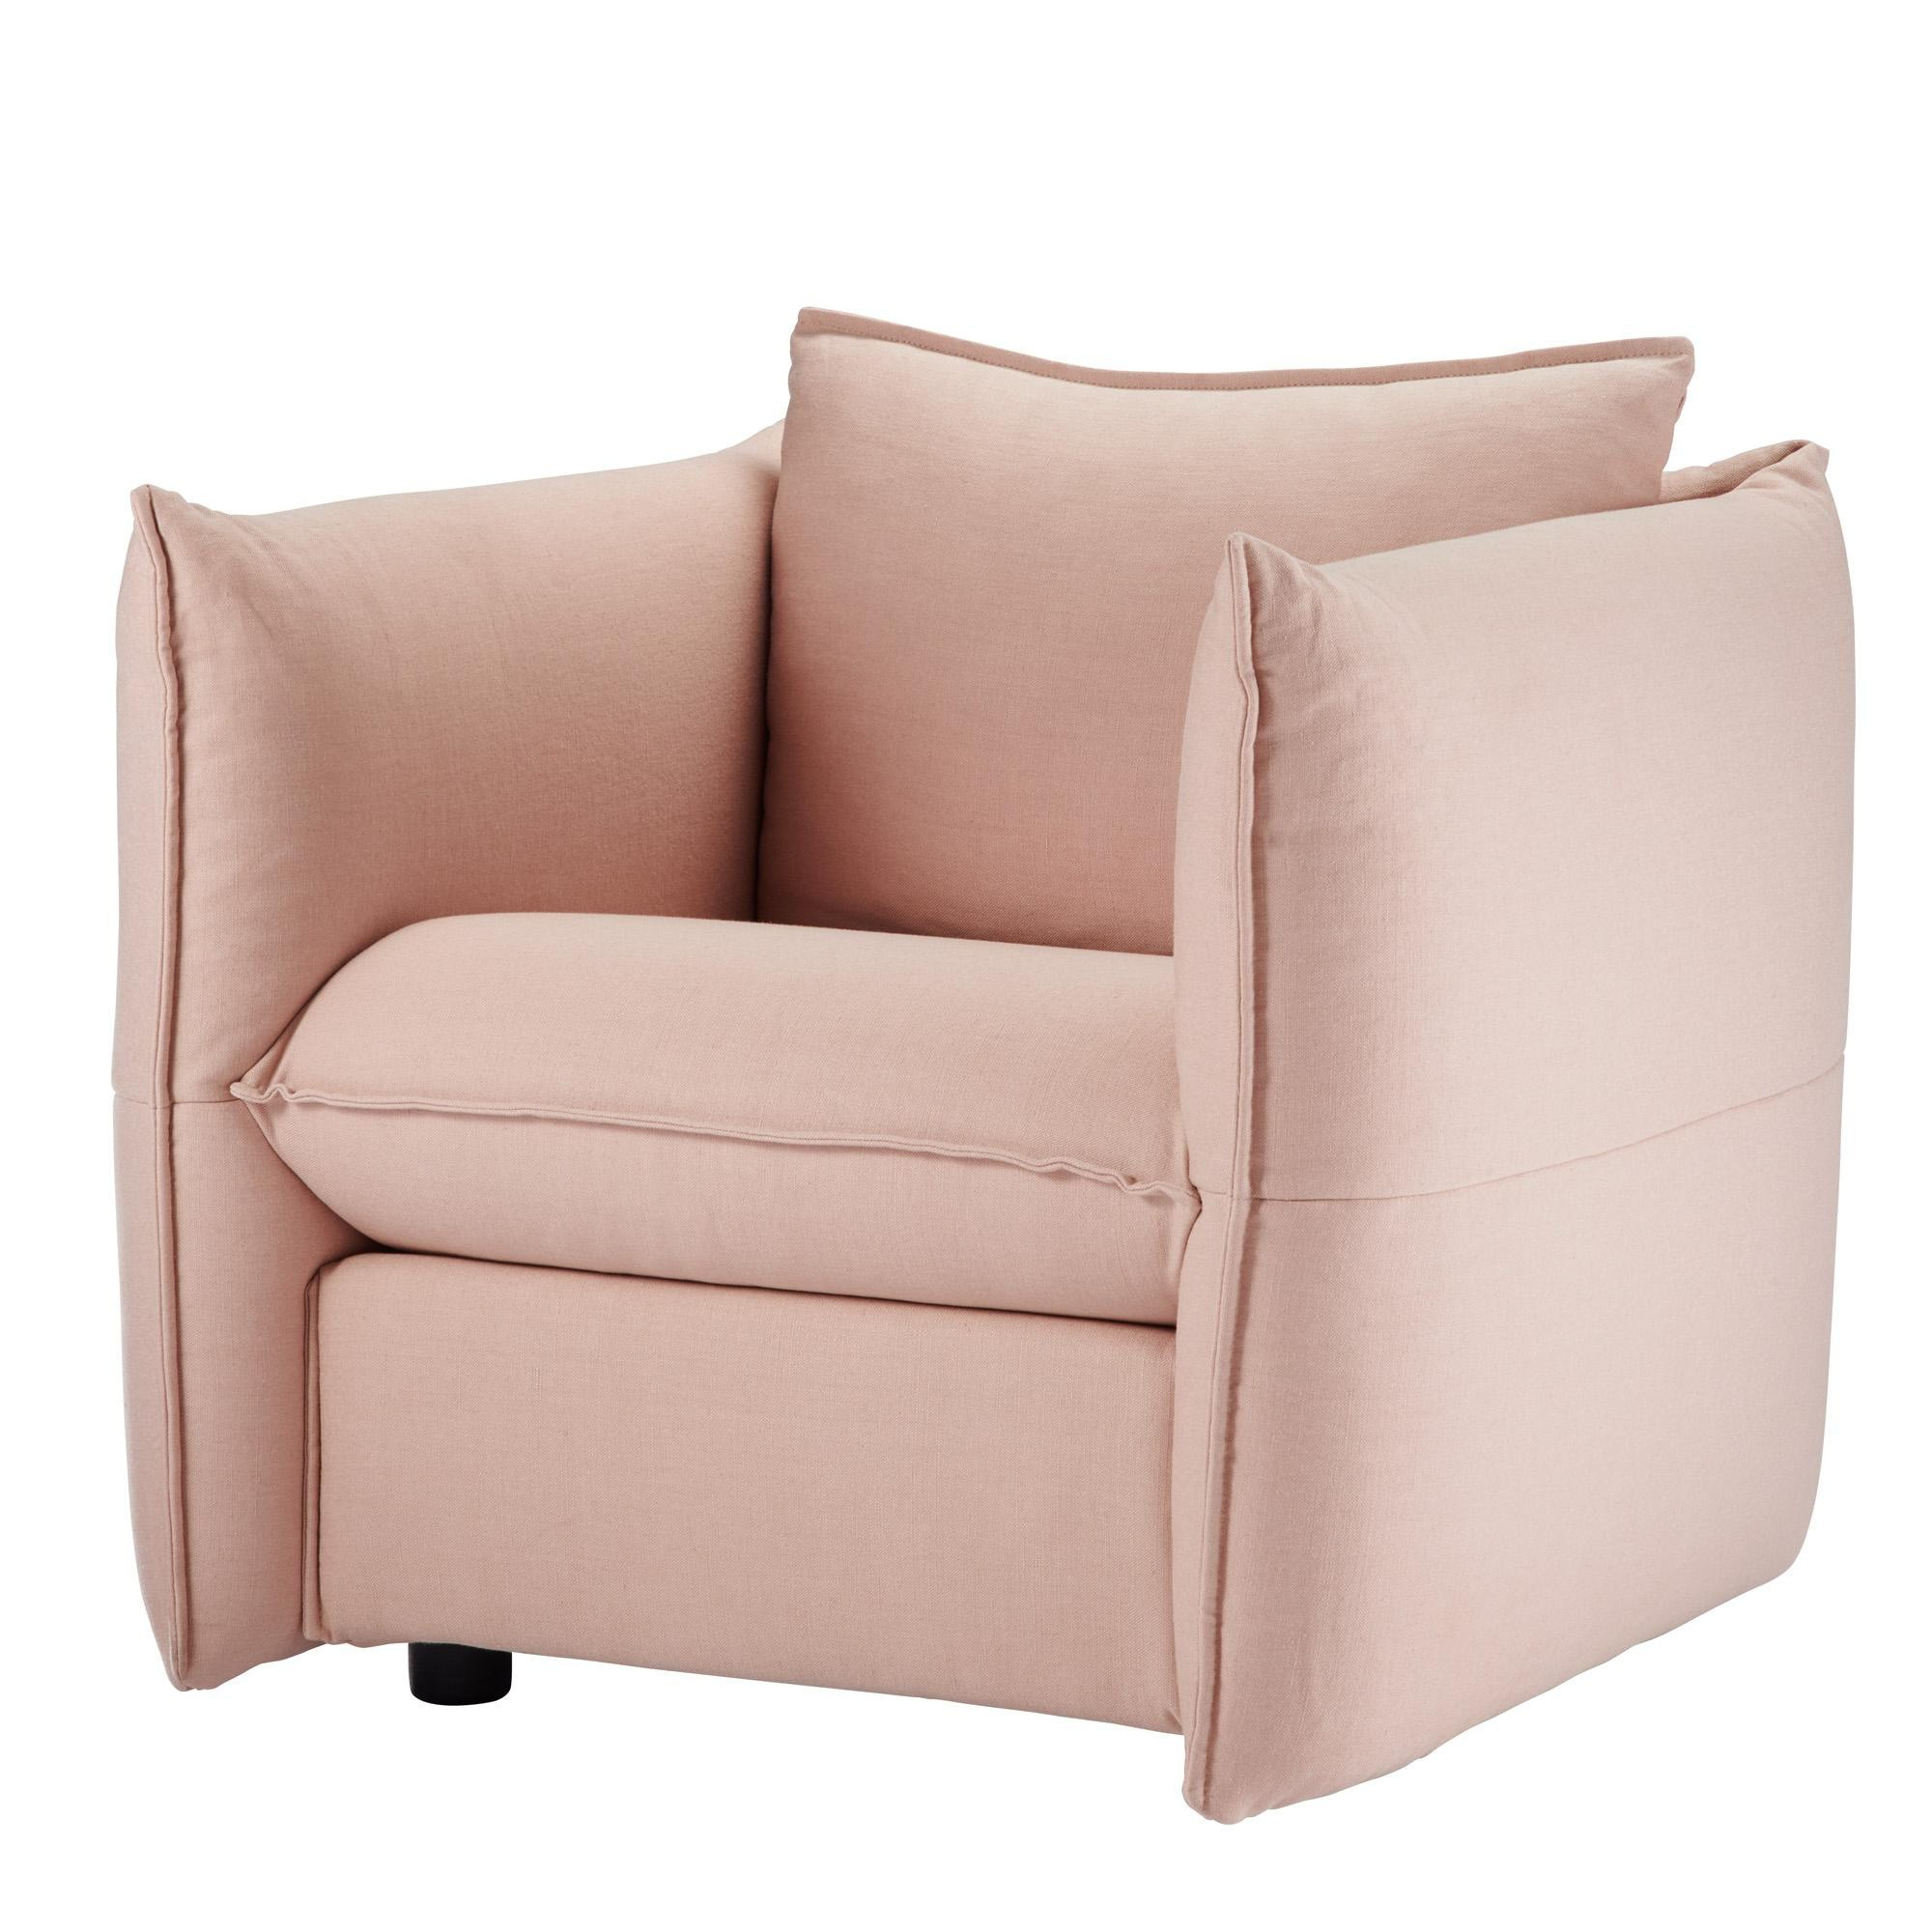 Vitra Sessel Mariposa Club Sessel